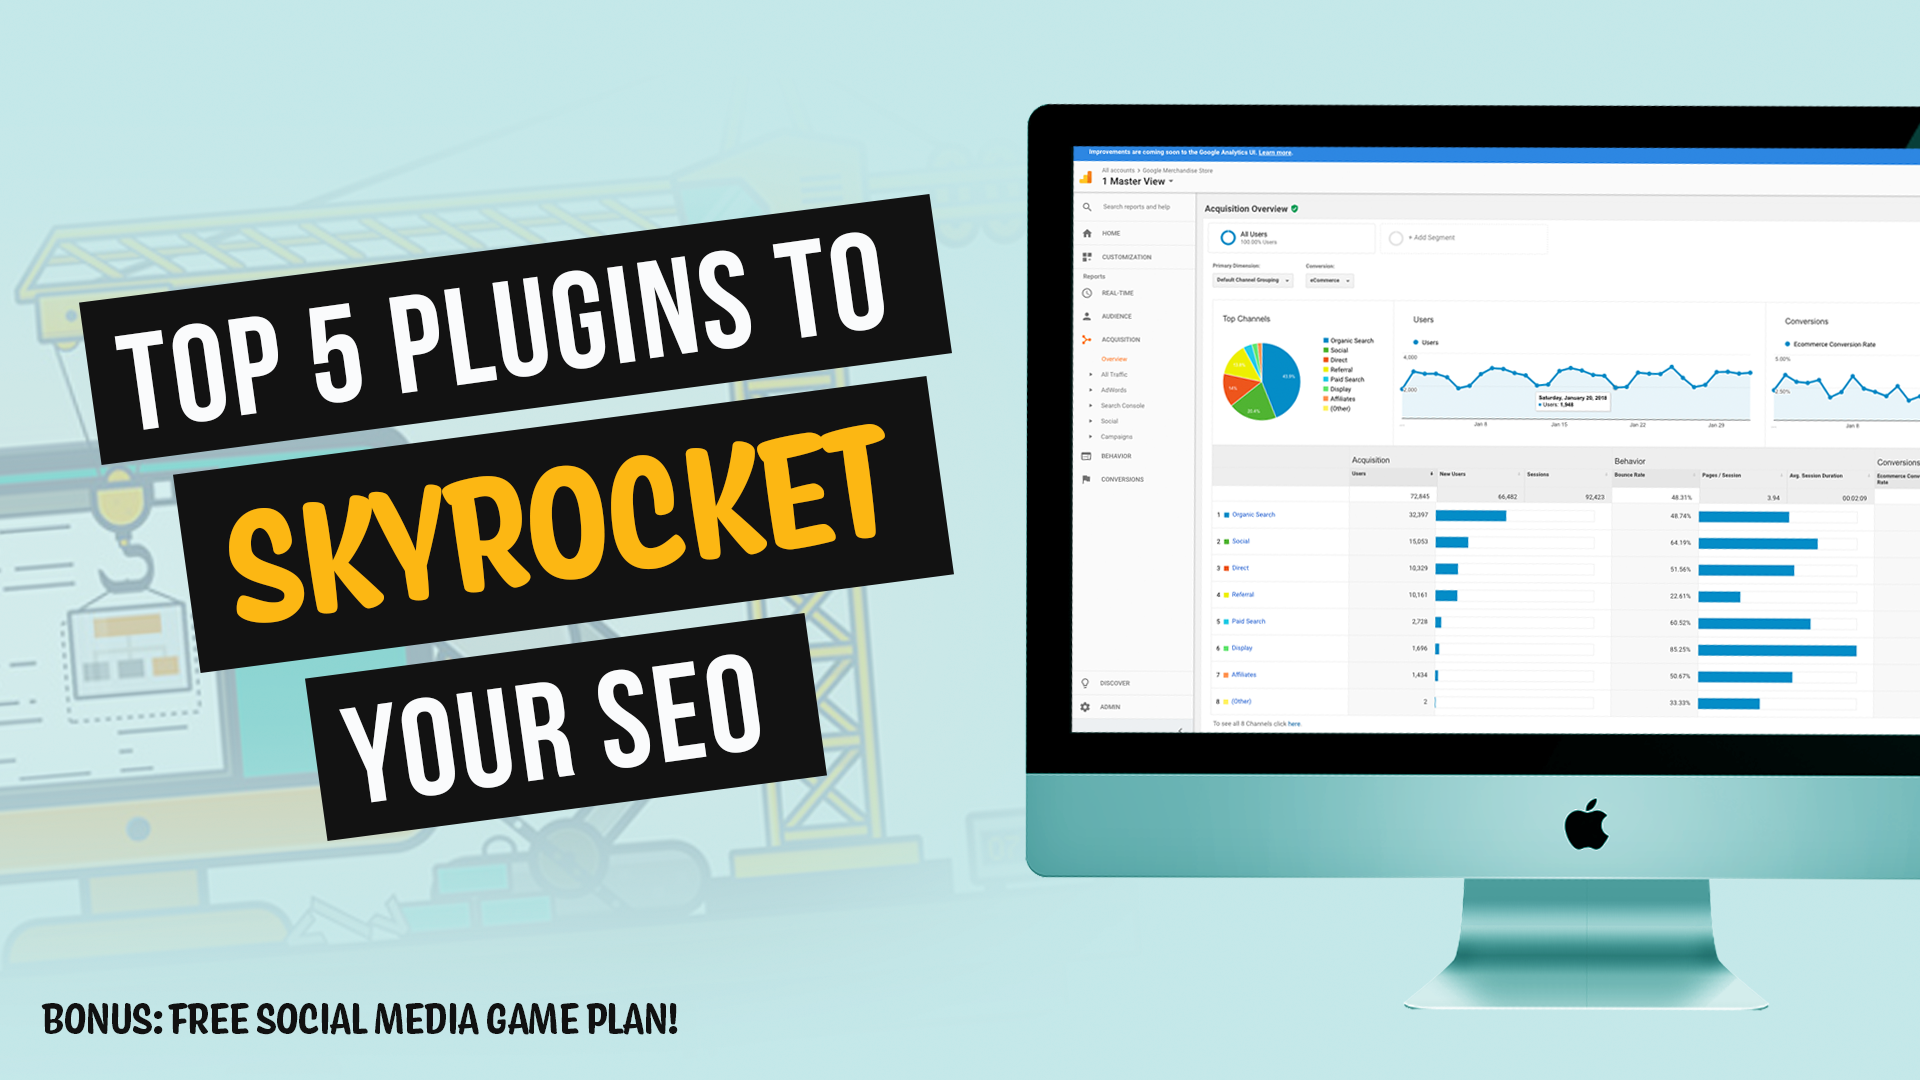 Top 5 Plugins to Skyrocket Your SEO